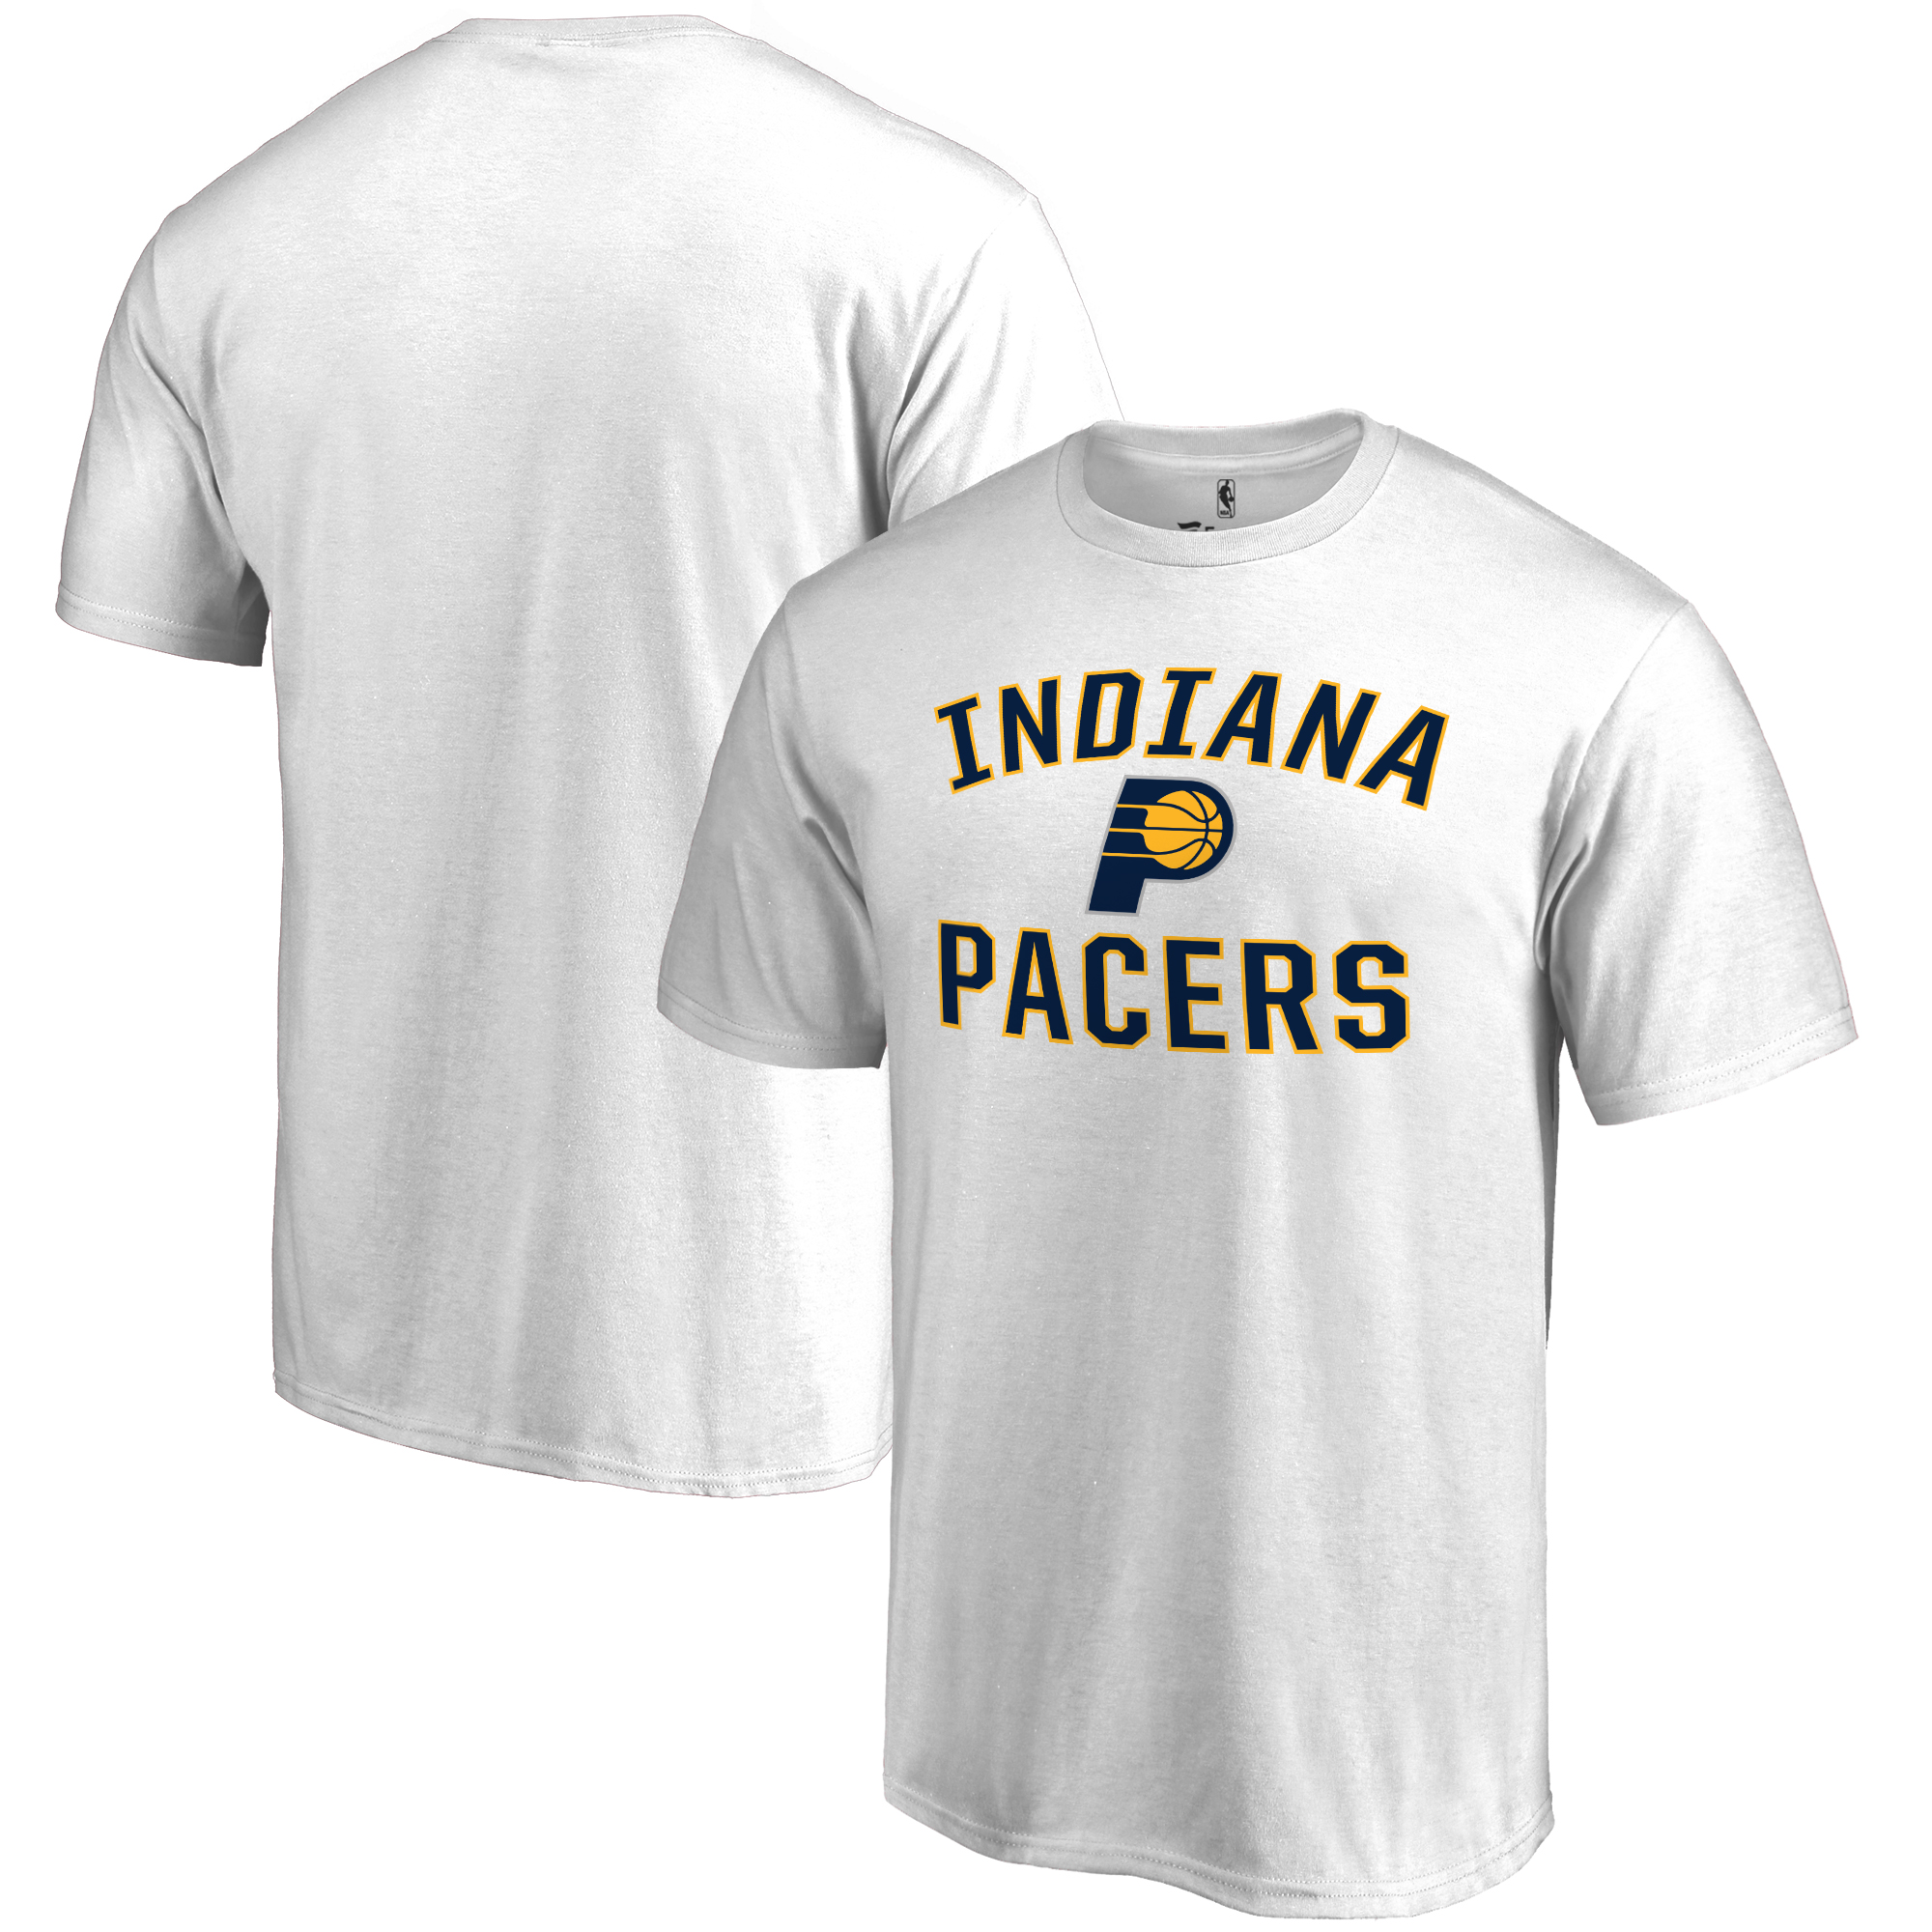 Indiana Pacers Big & Tall Victory Arch T-Shirt - White